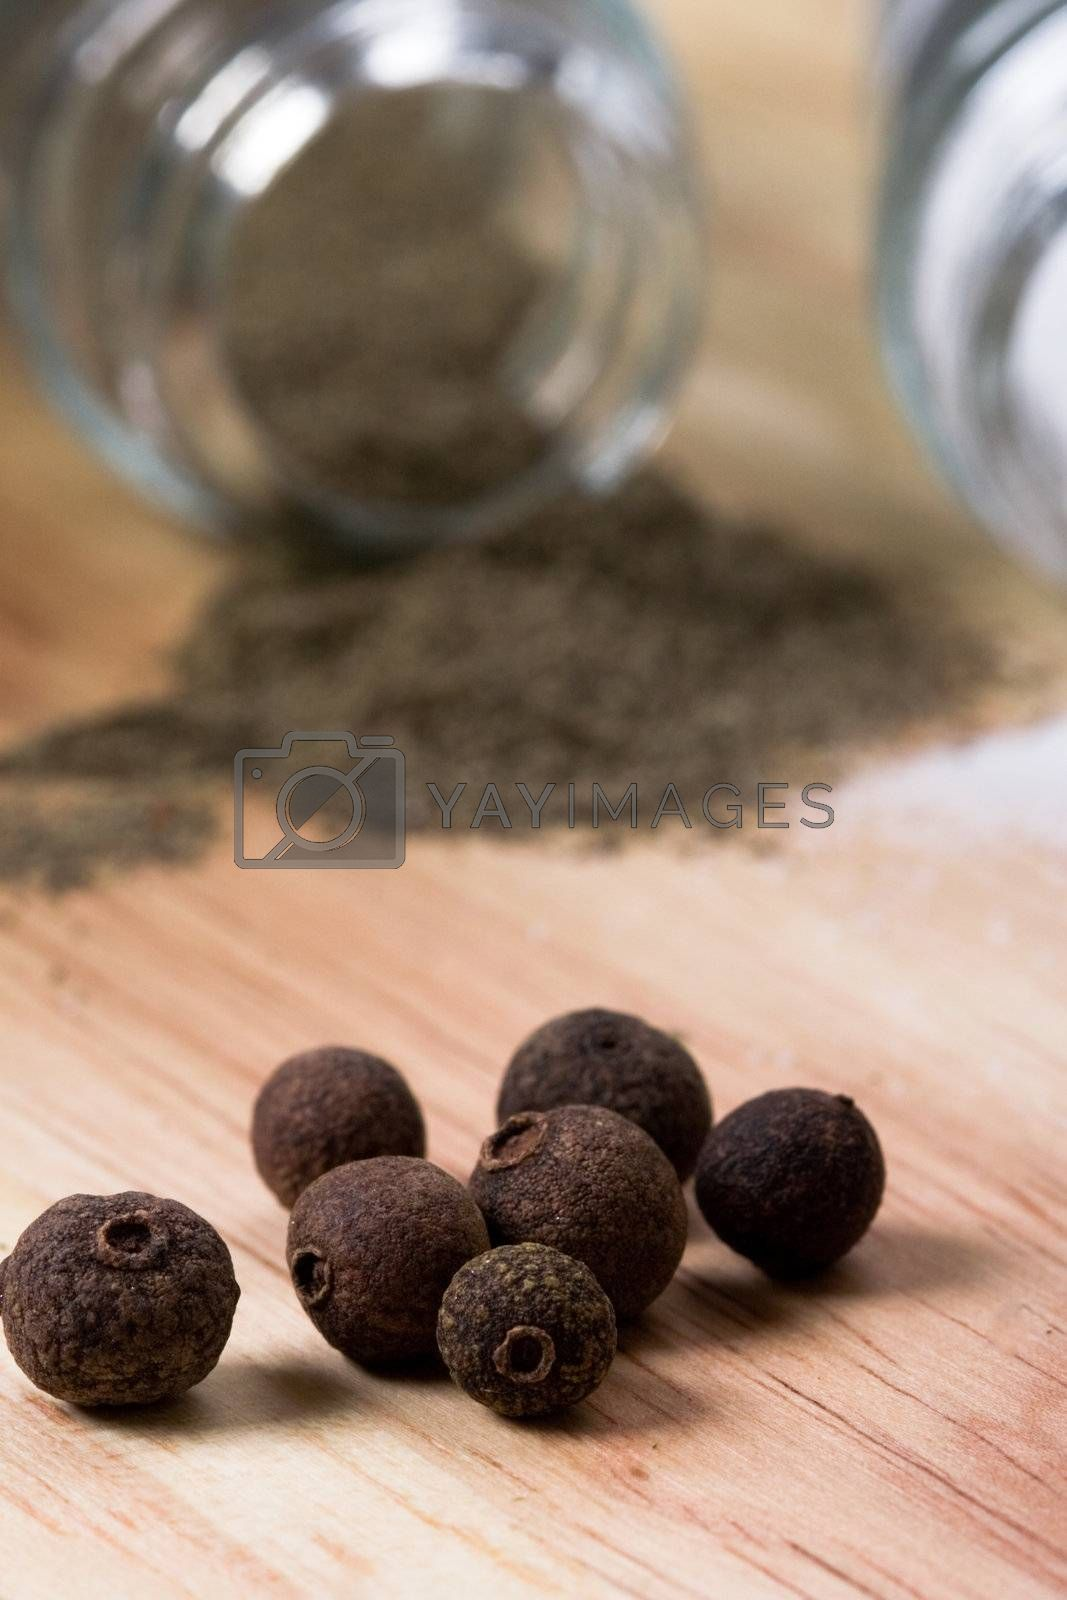 Royalty free image of pepper on wooden background  by marylooo